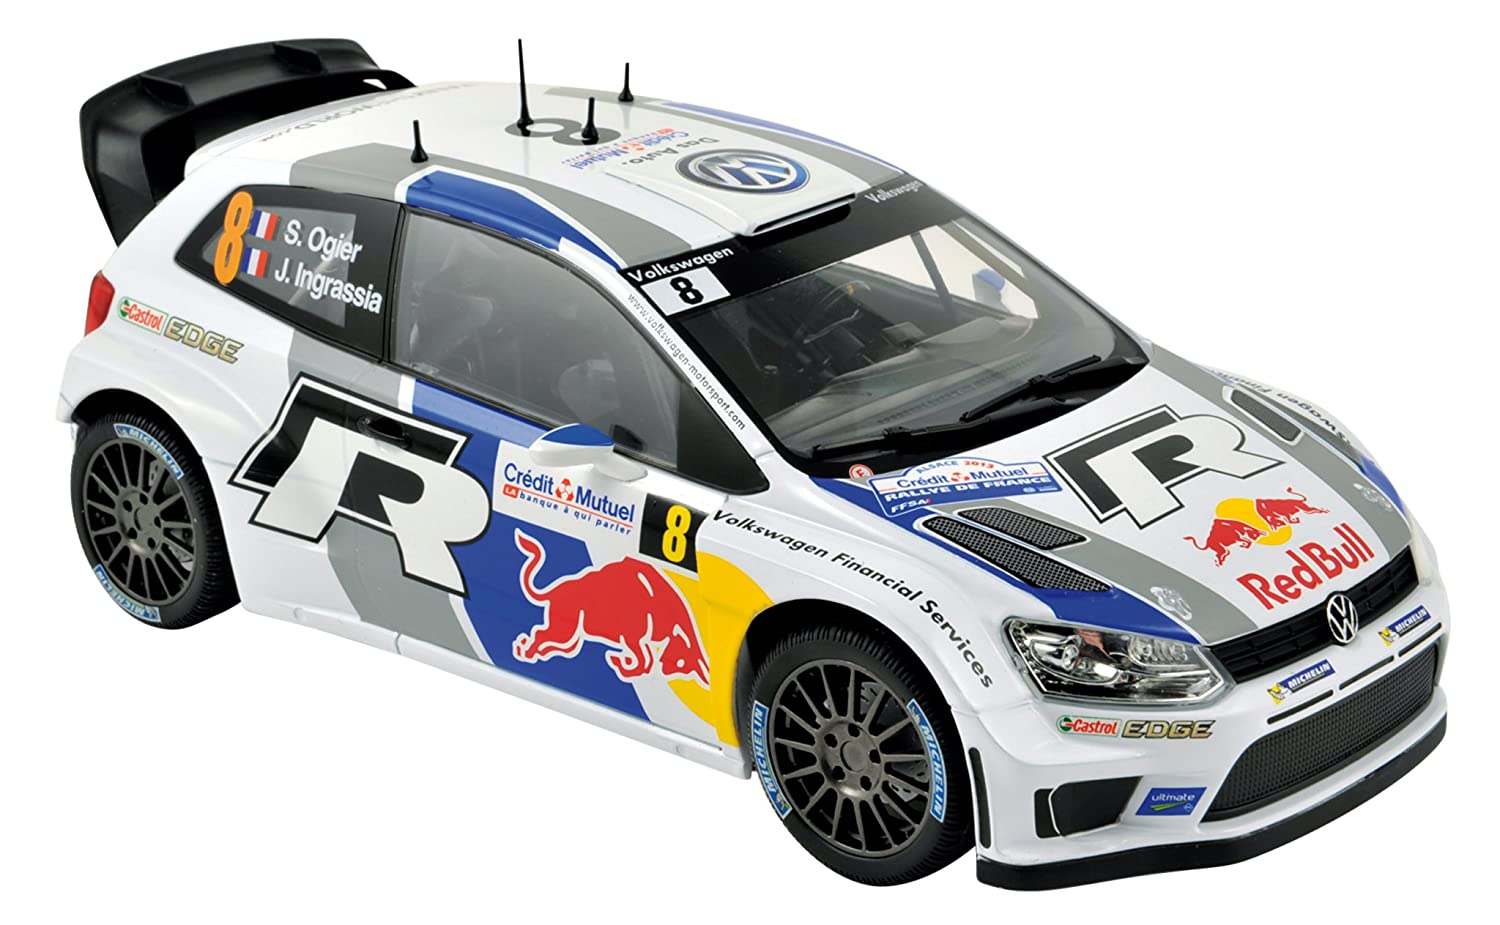 VW Polo R WRC #8 World Champion French rally 2013 1:43 norev